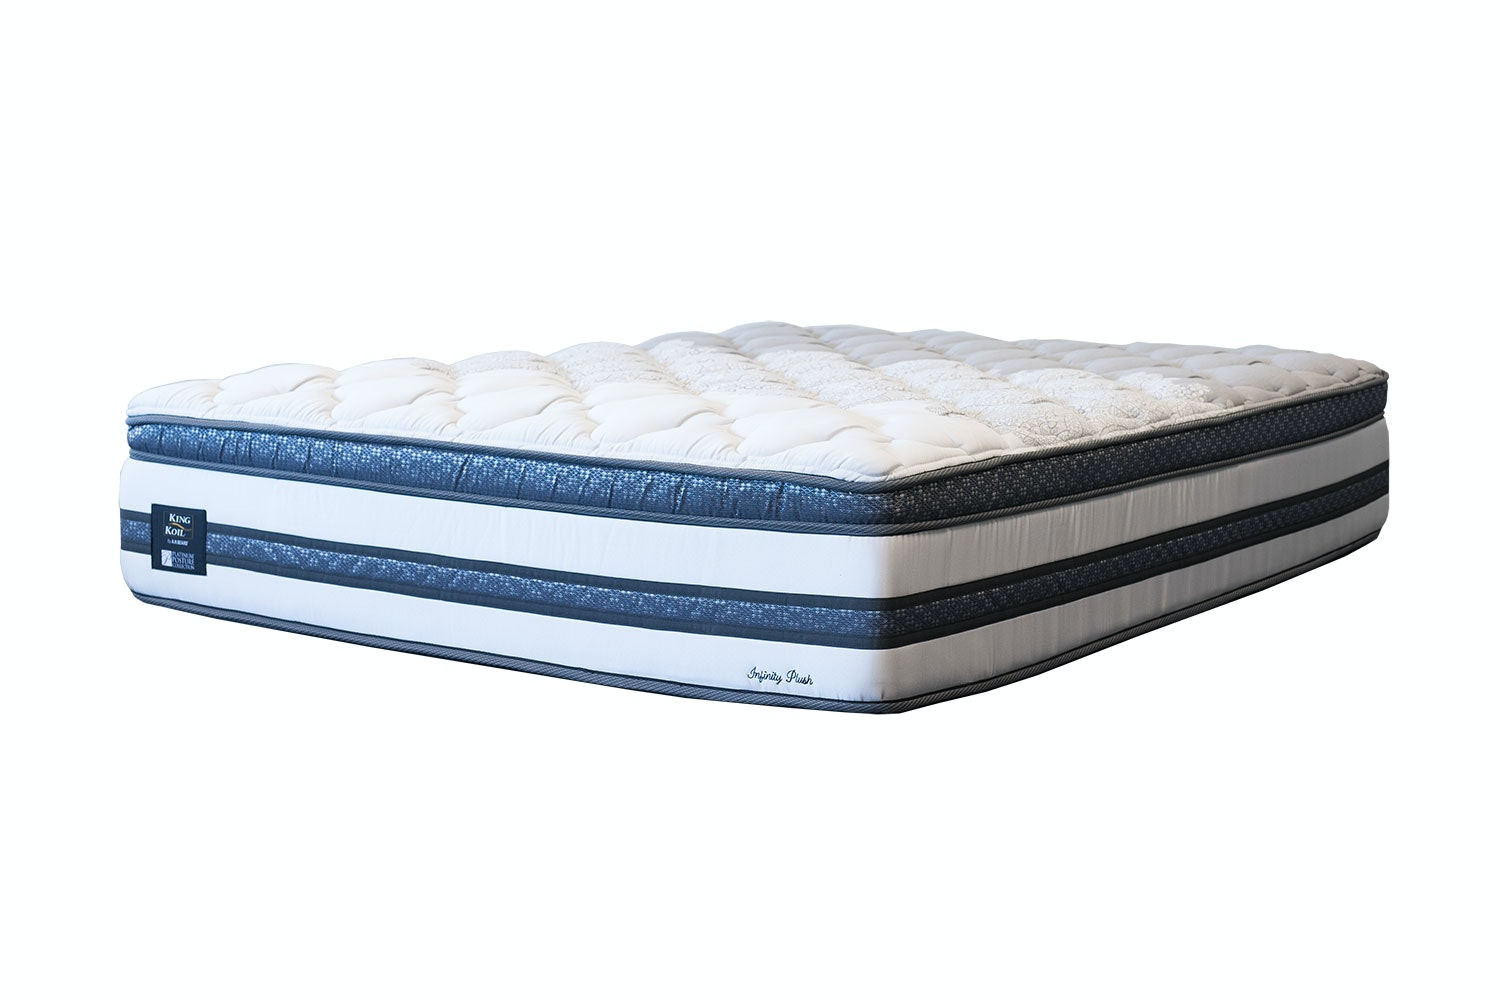 Infinity Plush Single Mattress by King Koil